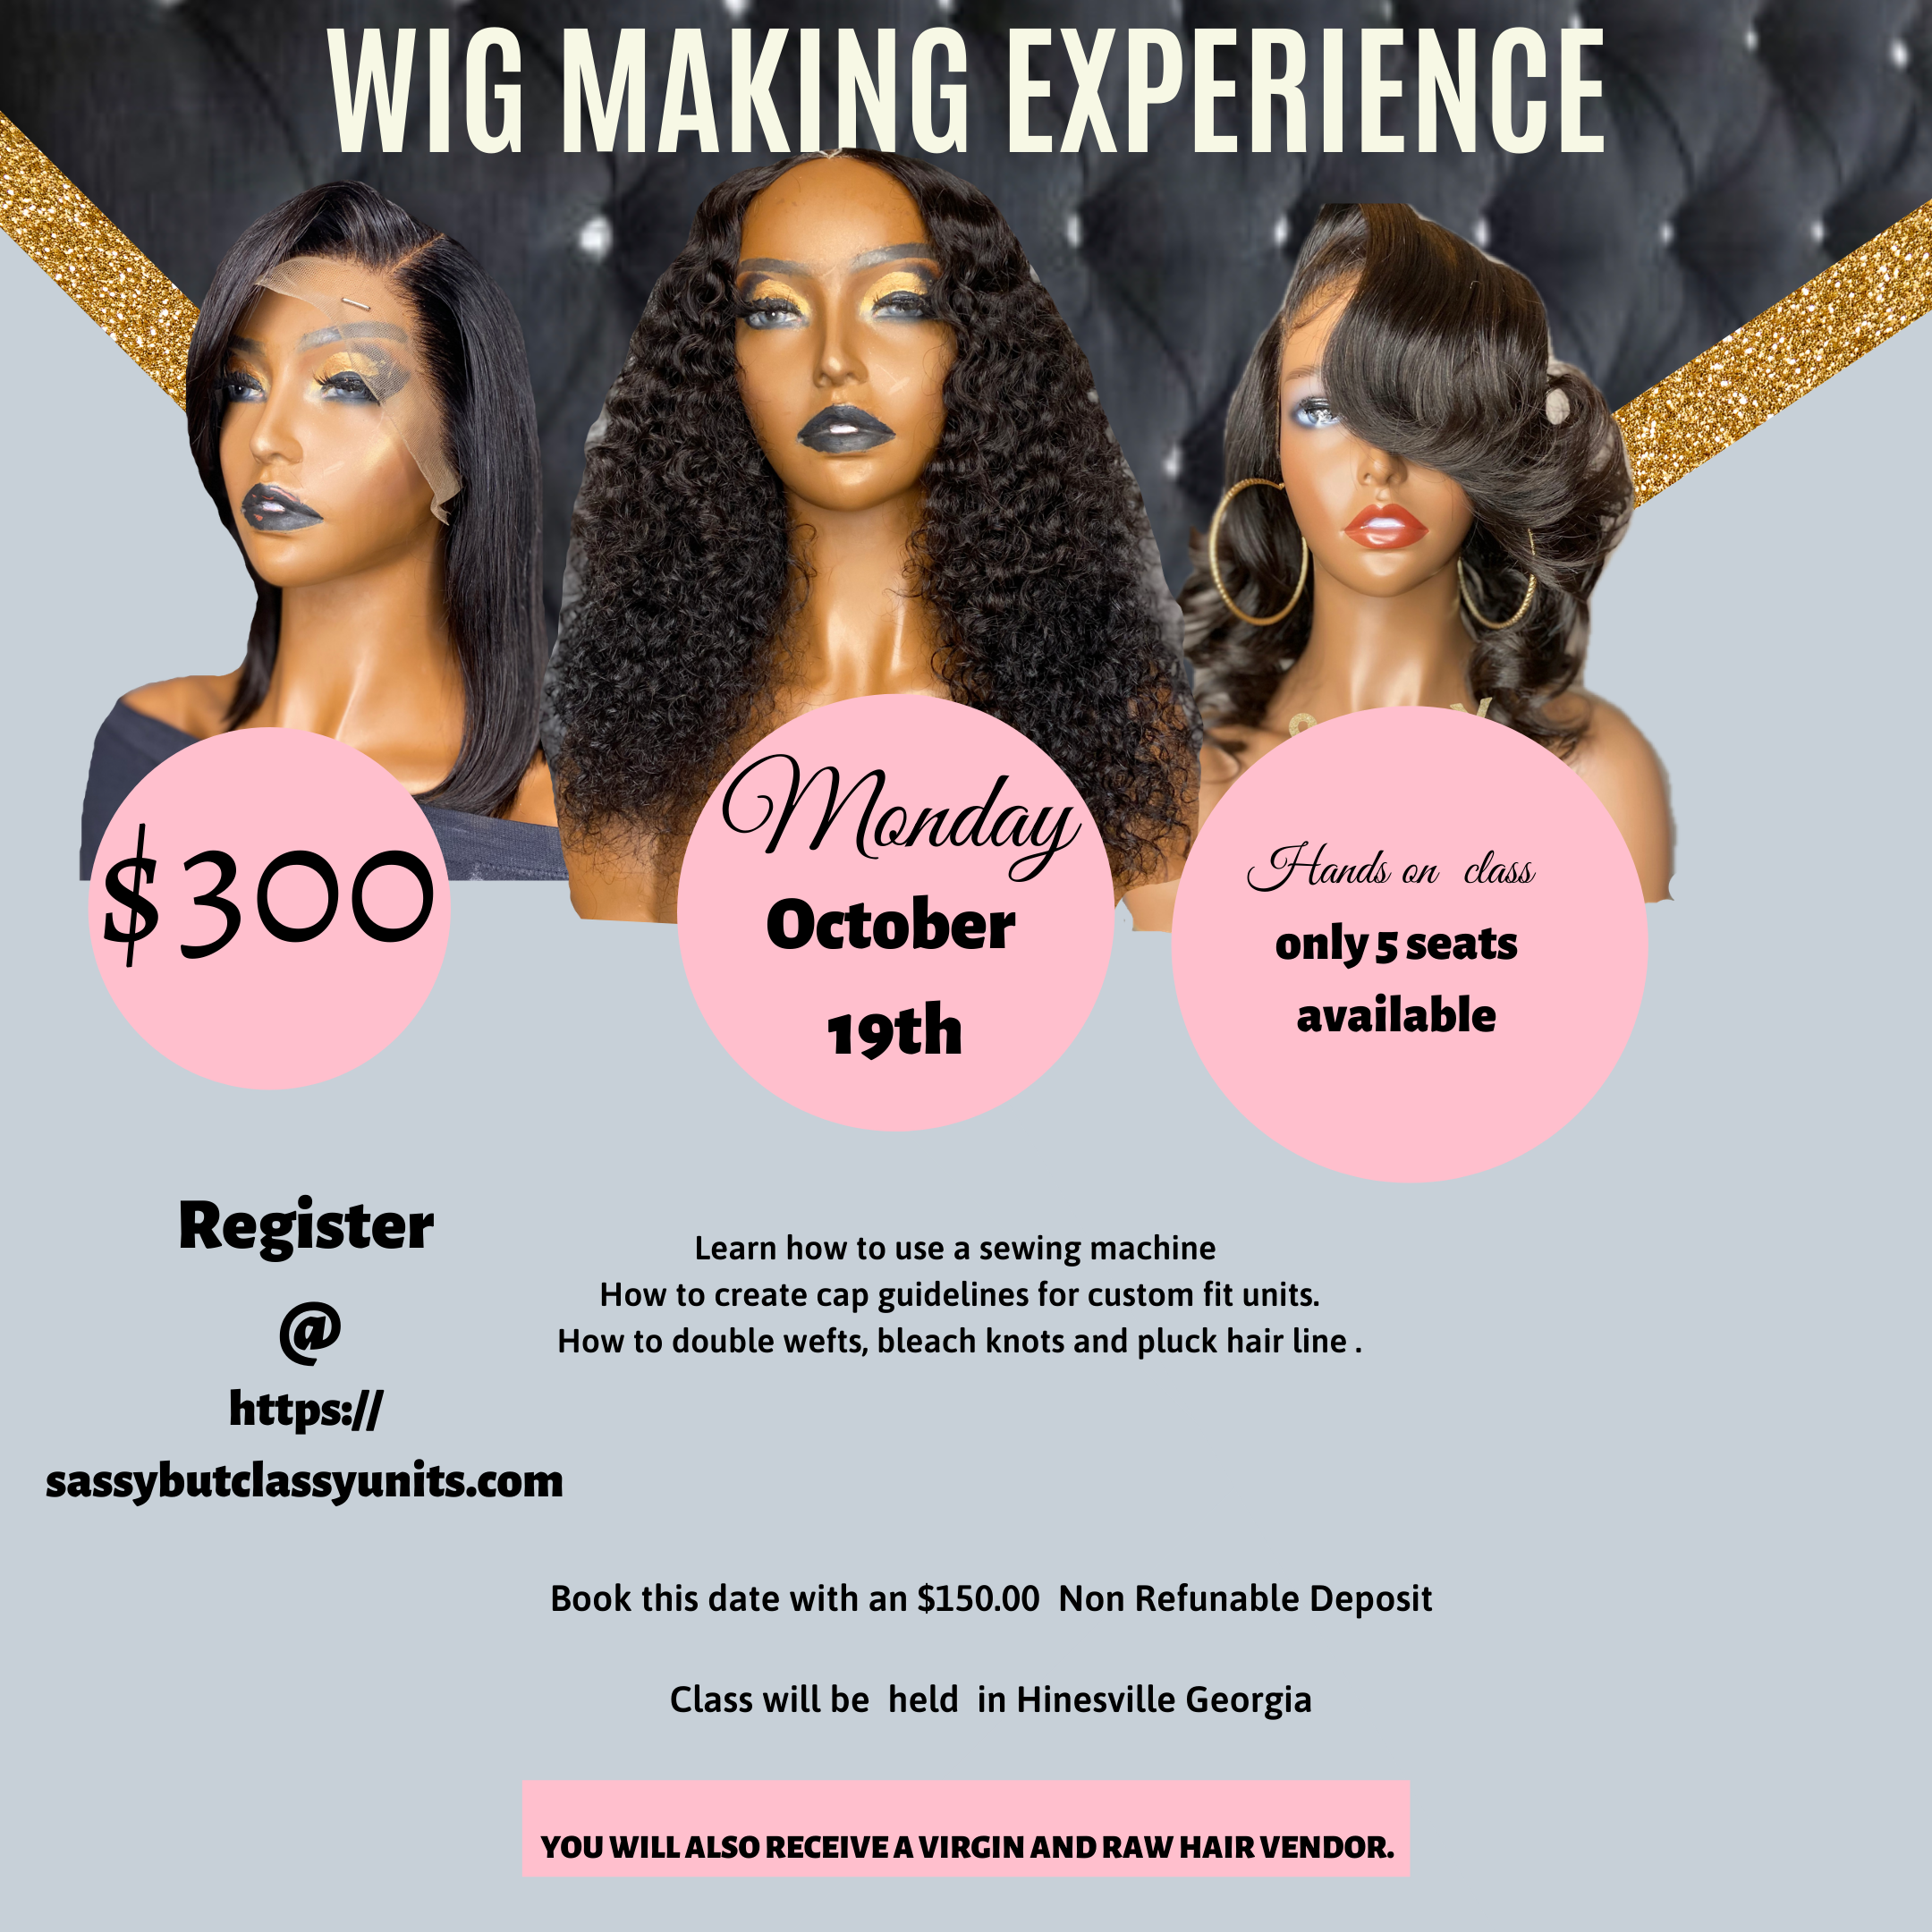 Wig Making Experience